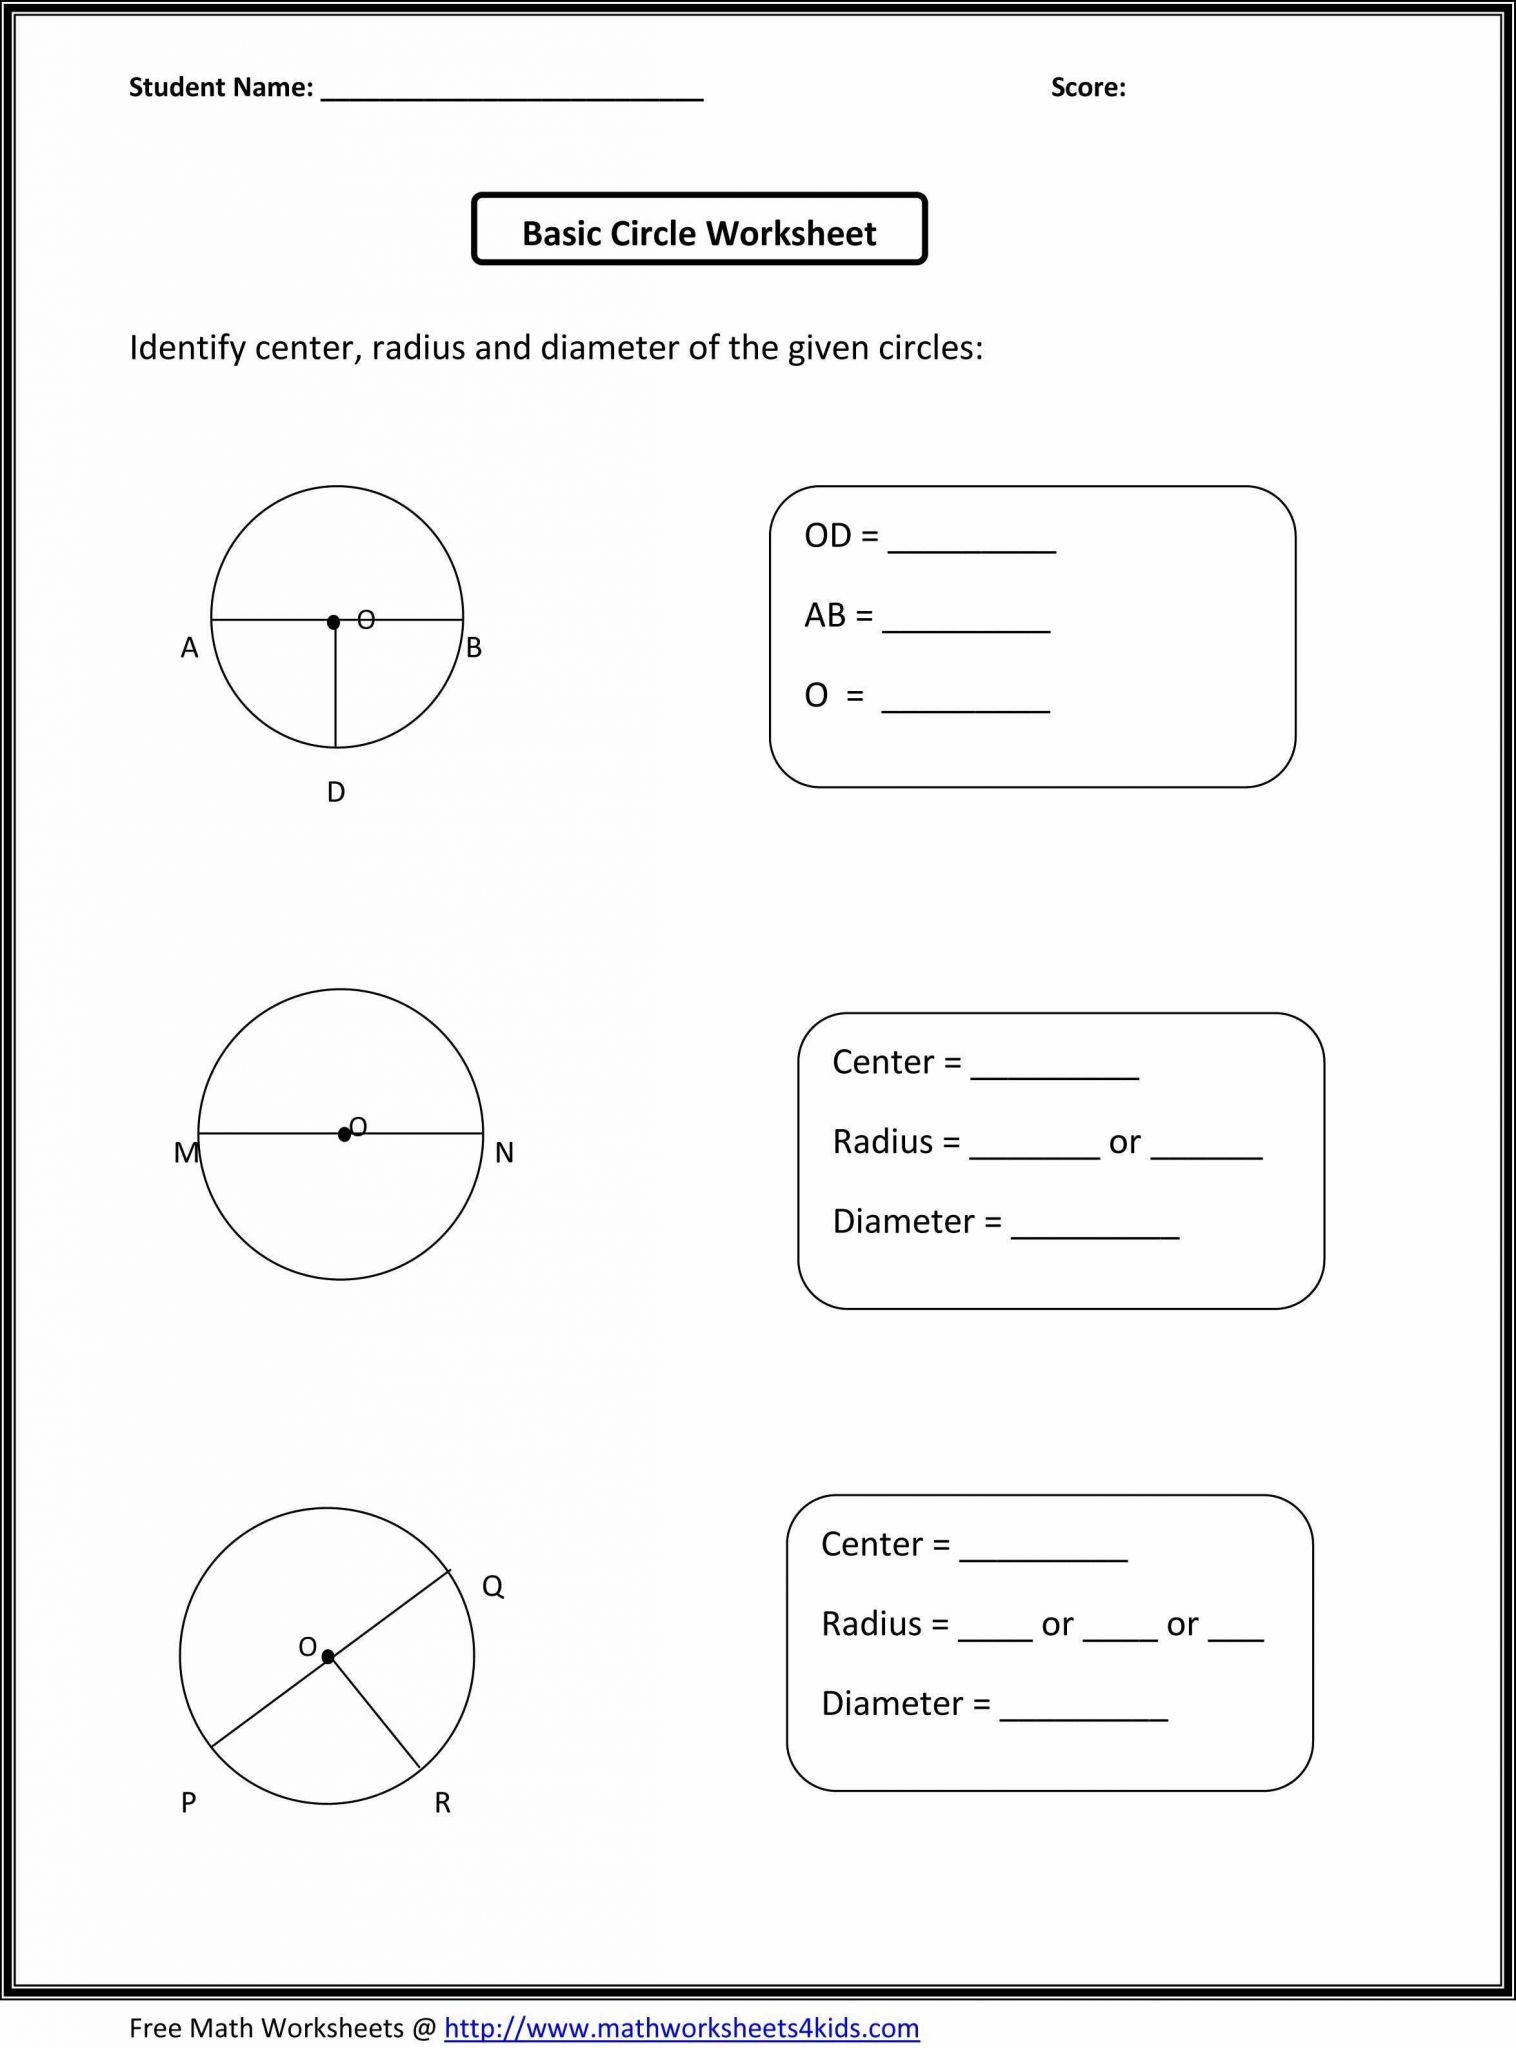 Riddle Equations And Inequalities Worksheet